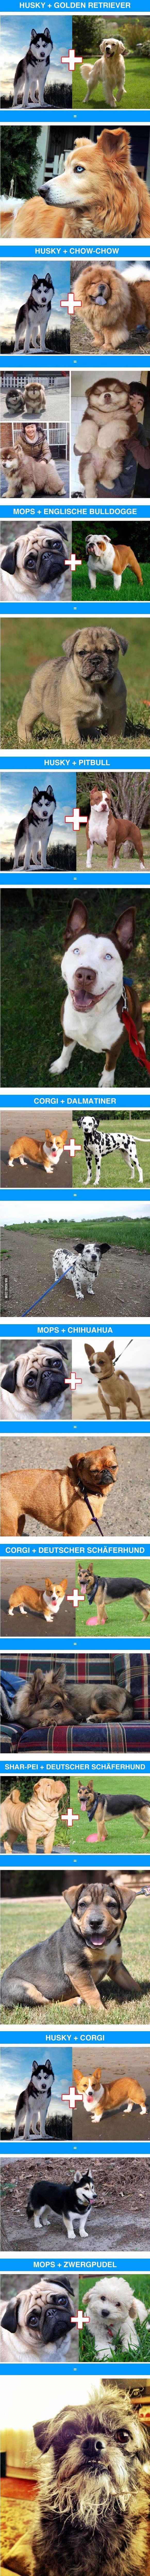 Dog's Mix Breed explained